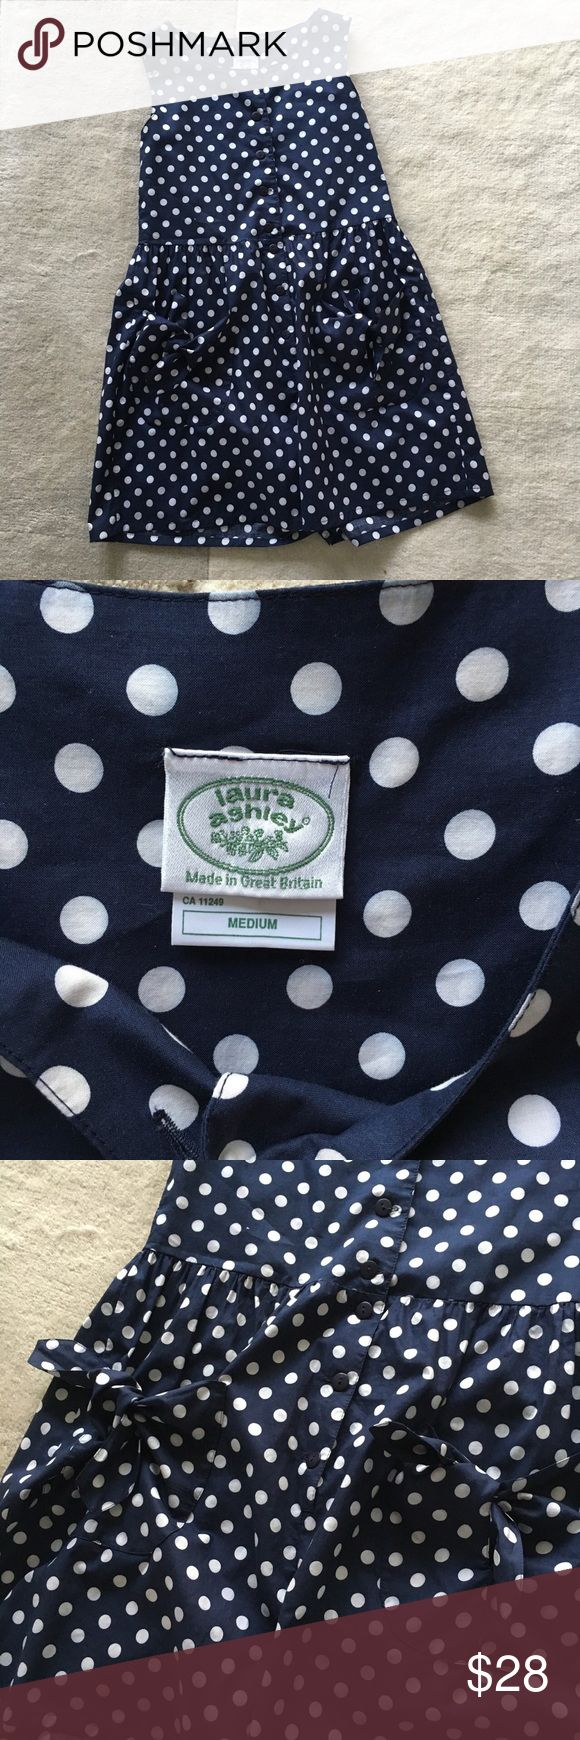 Laura Ashley polka dots jumper Laura Ashley vintage polka dots jumper, my favorite found so far, front buttons and two front pockets with knots, size m, can fit xs to m. 100% cotton, super adorable. It is in amazing vintage condition ❤️ Laura Ashley Pants Jumpsuits & Rompers